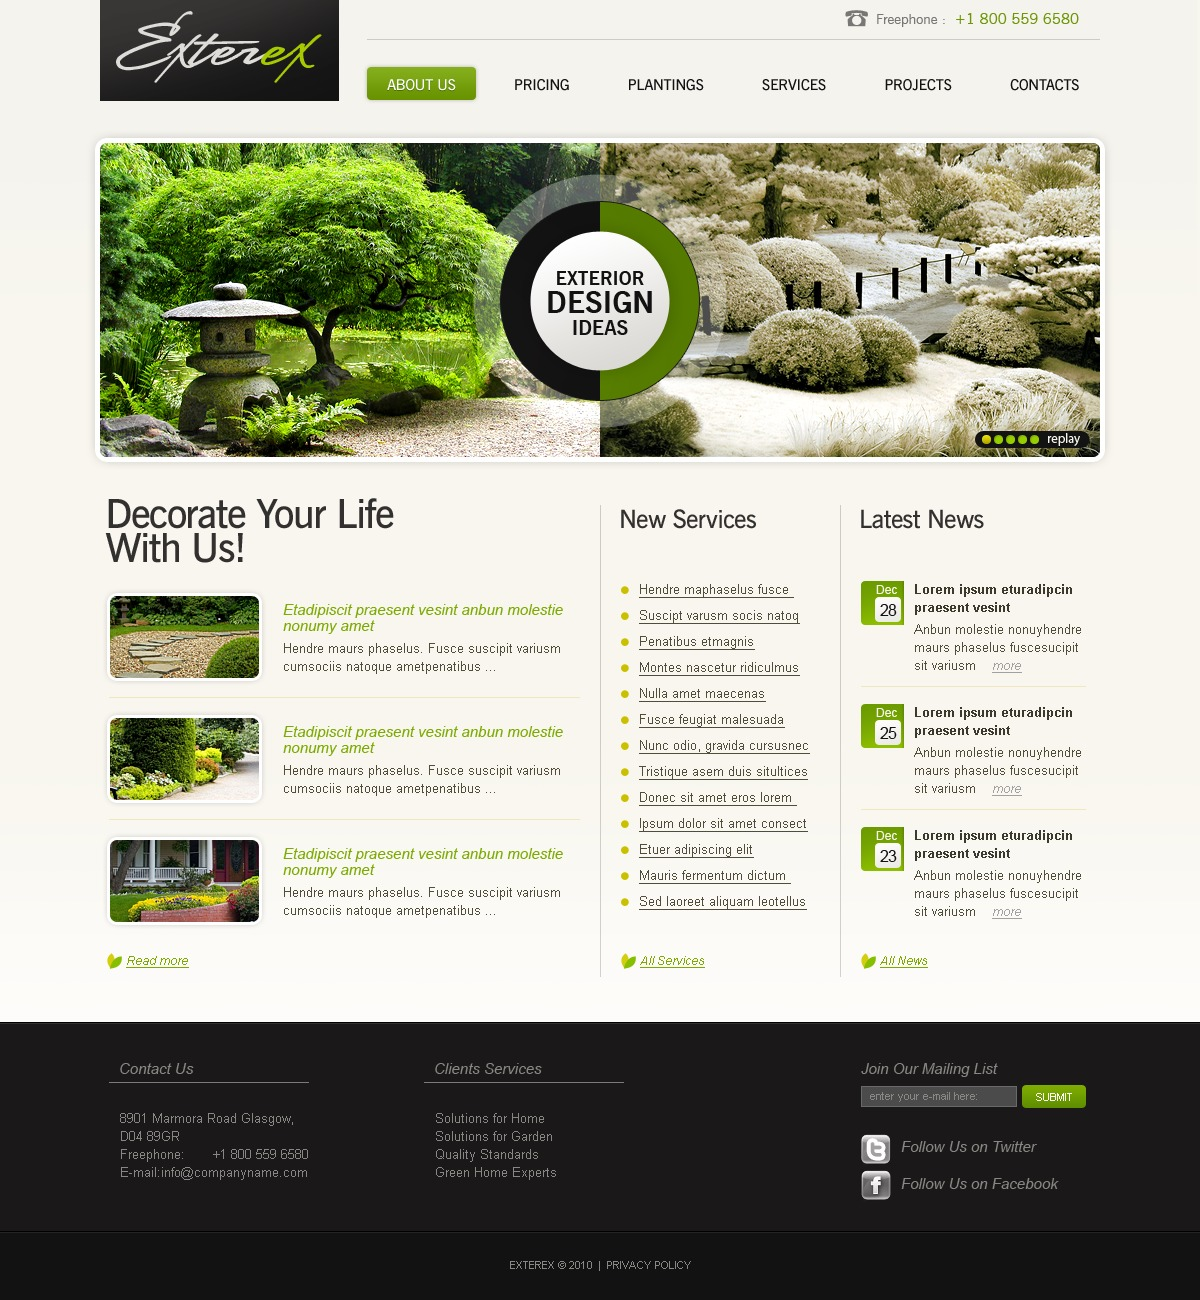 Exterior design website template 27634 for Exterior design website templates